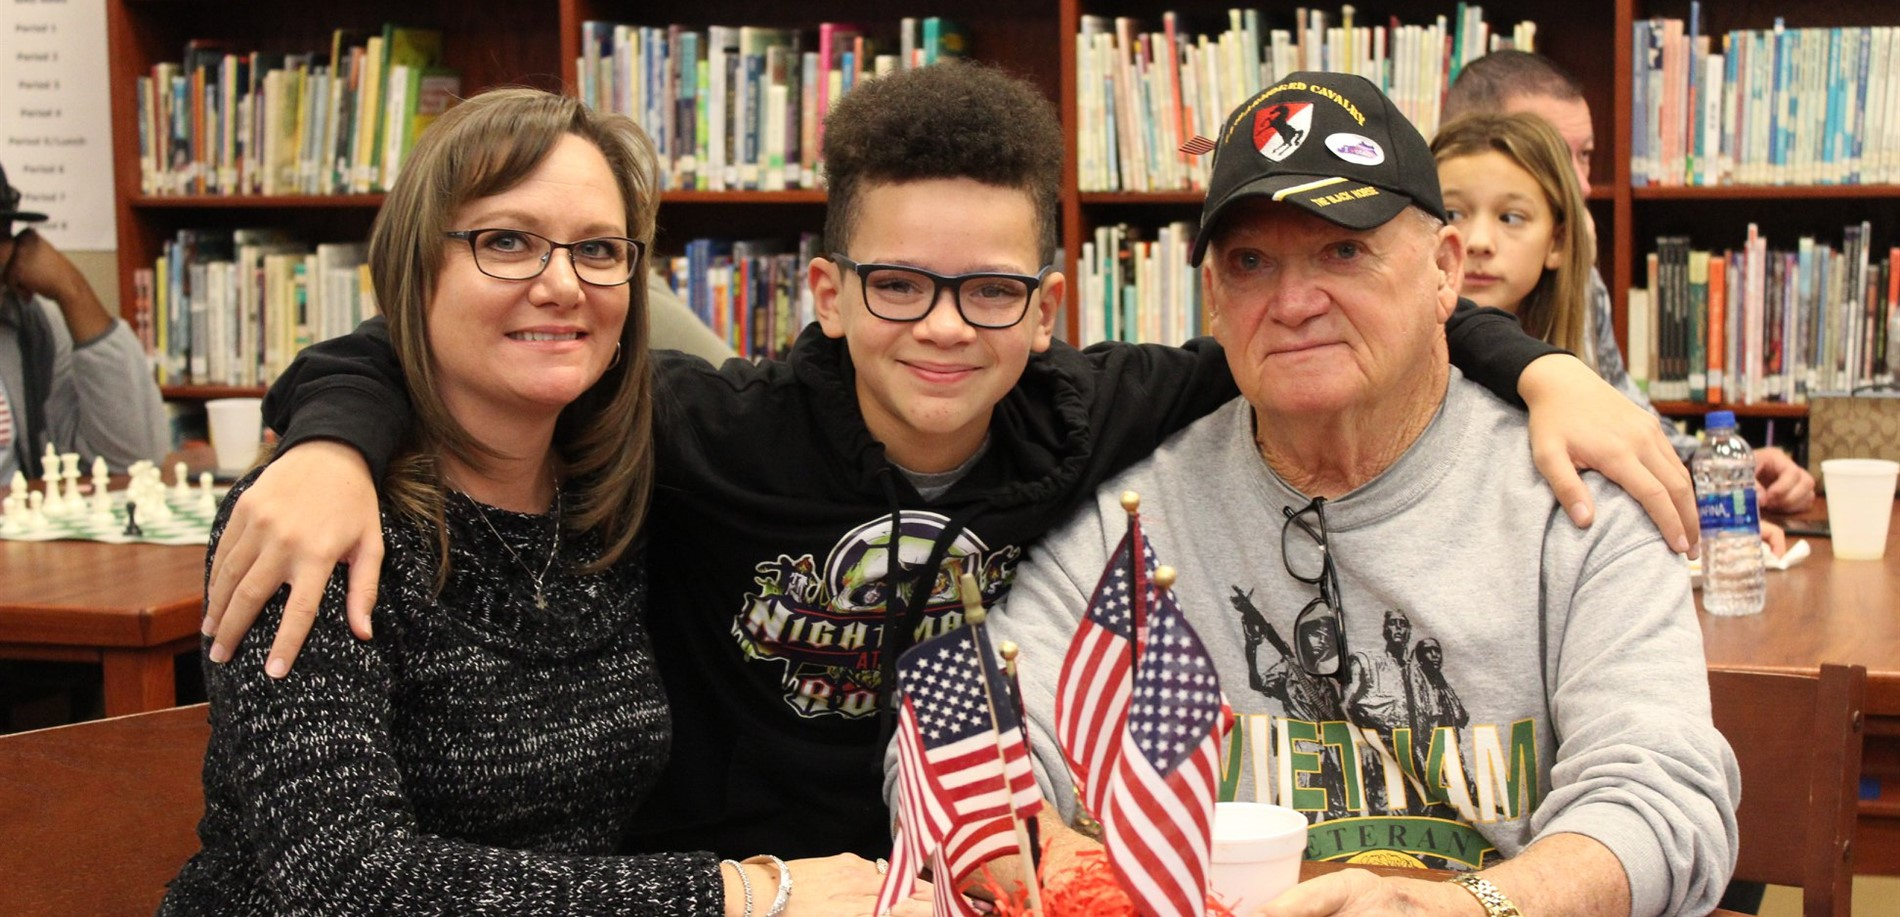 North Middle School welcomed lots of honored guests for the Veterans Day celebration.